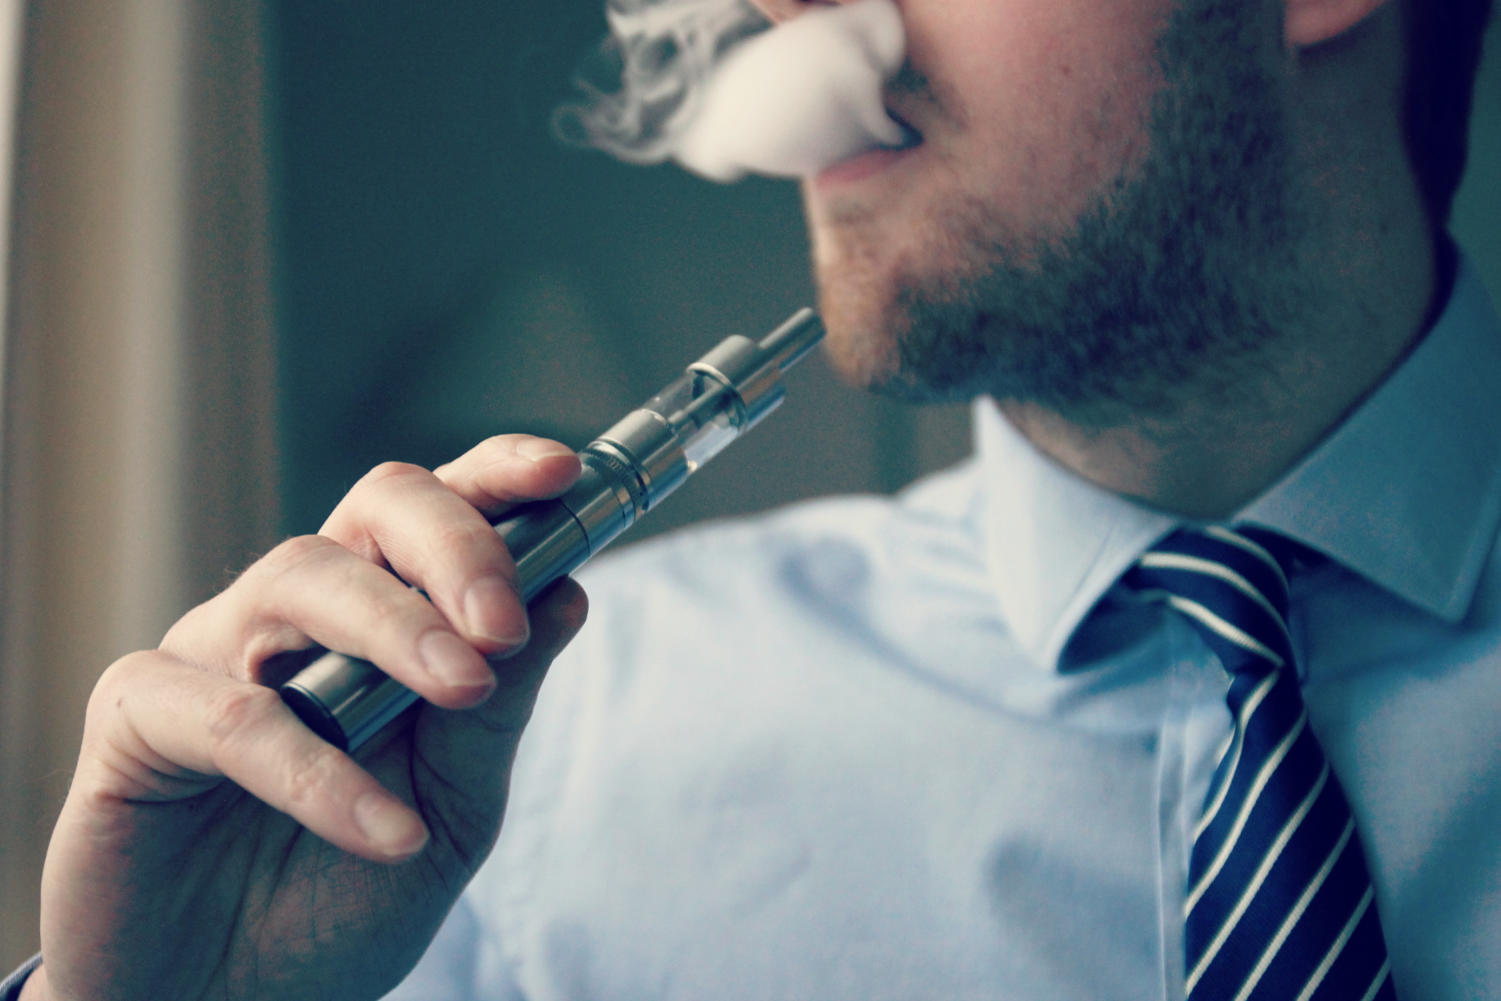 The number of vapers has been increasing rapidly - from about seven million in 2011 to 35 million in 2016.